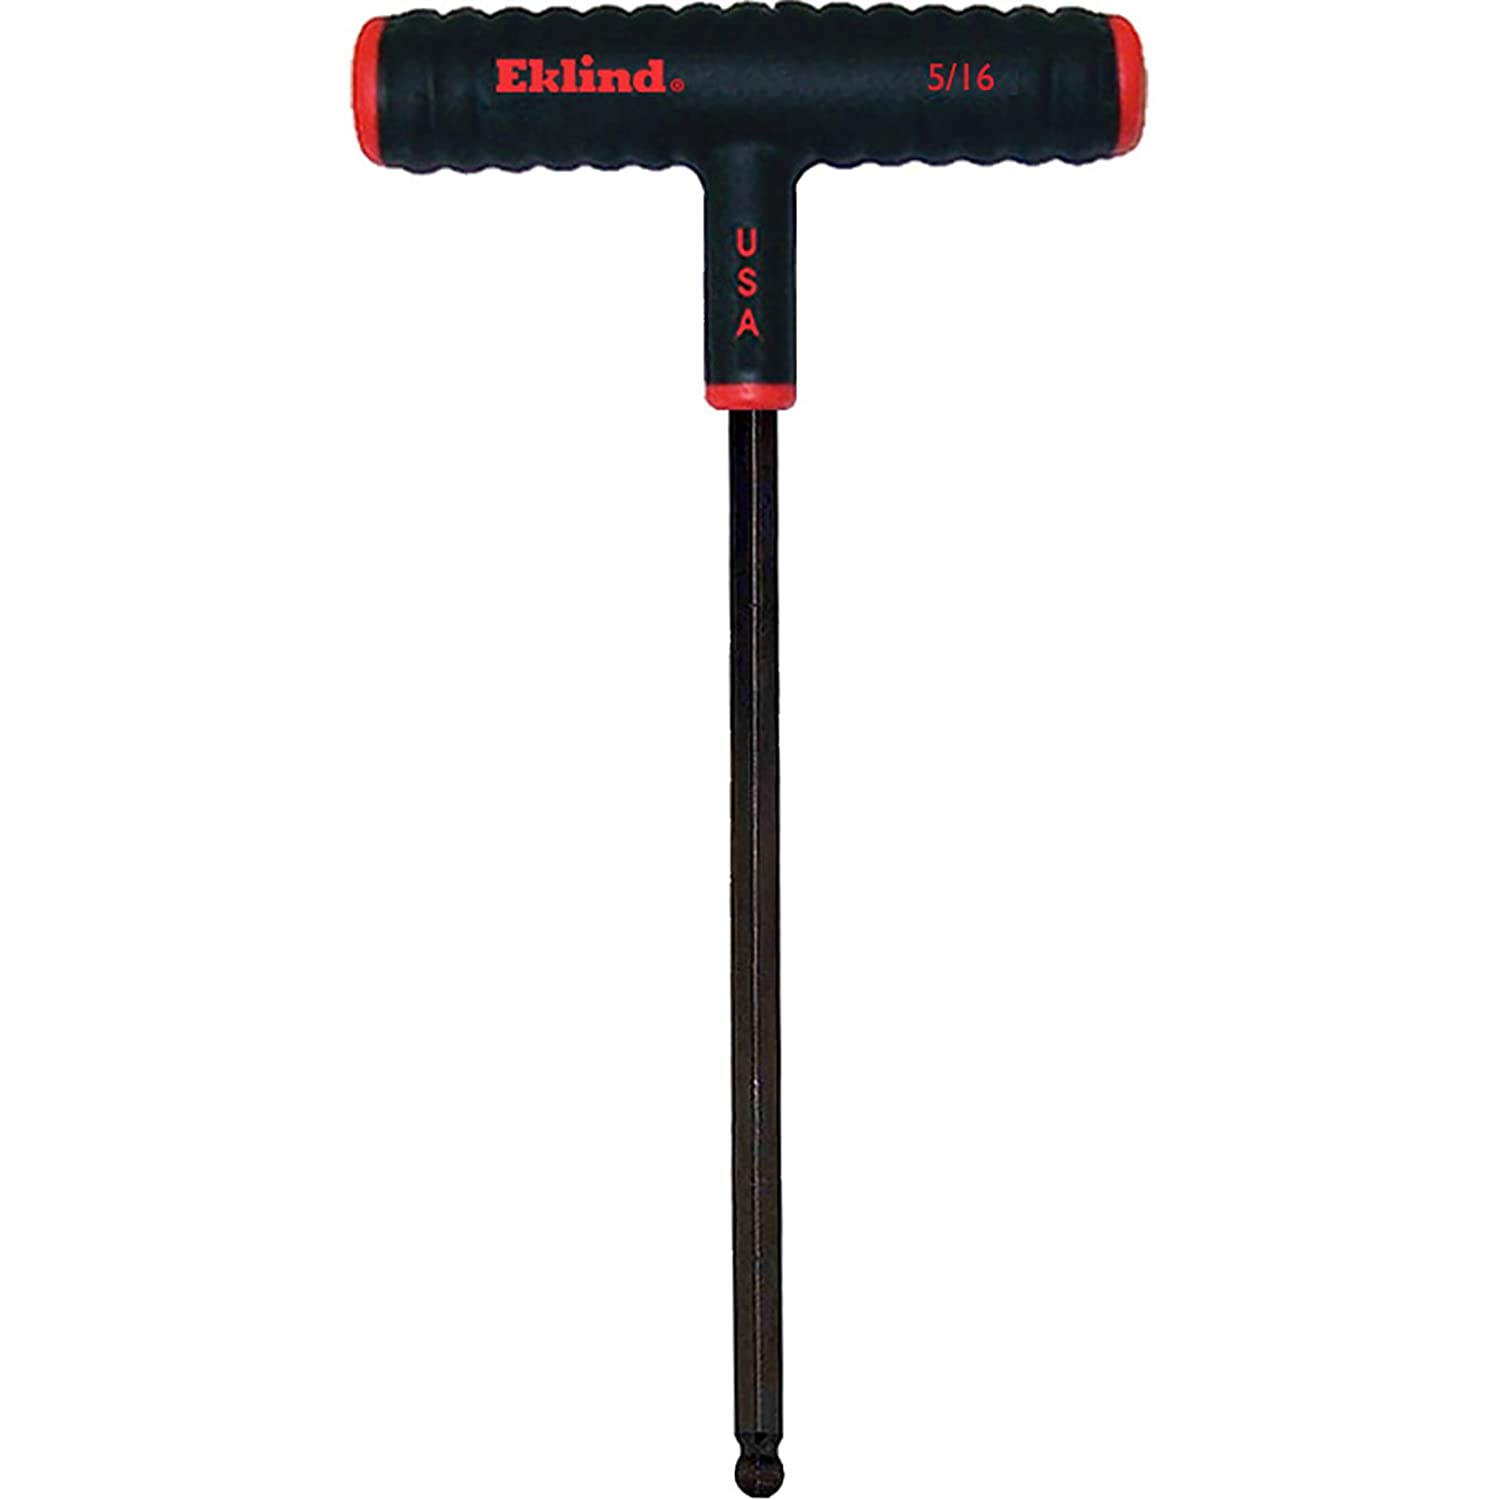 9//64-Inch Eklind 61809 9//64 Inch Power-T T-Handle Ball-Hex Key Steel